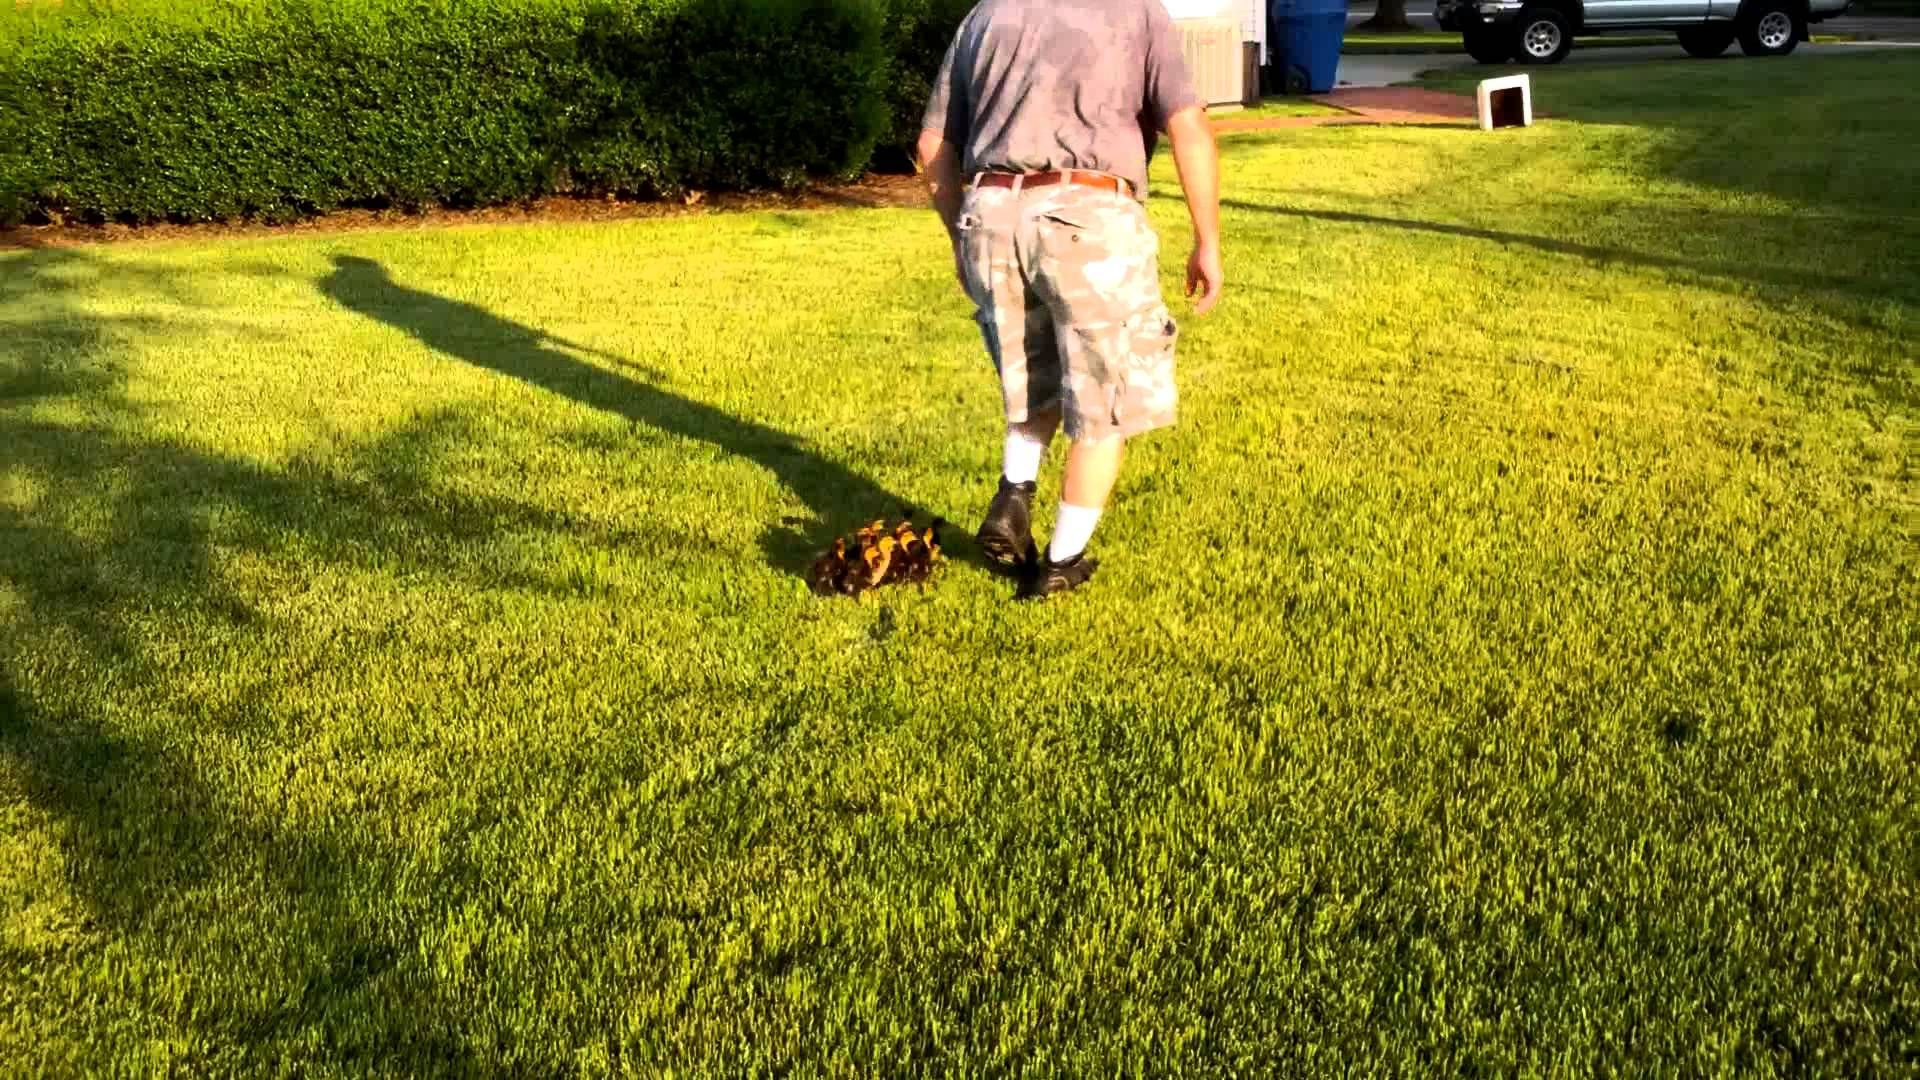 13 Ducklings Adopt The Compassionate Man Who Saved Them And Think of Him as Mom